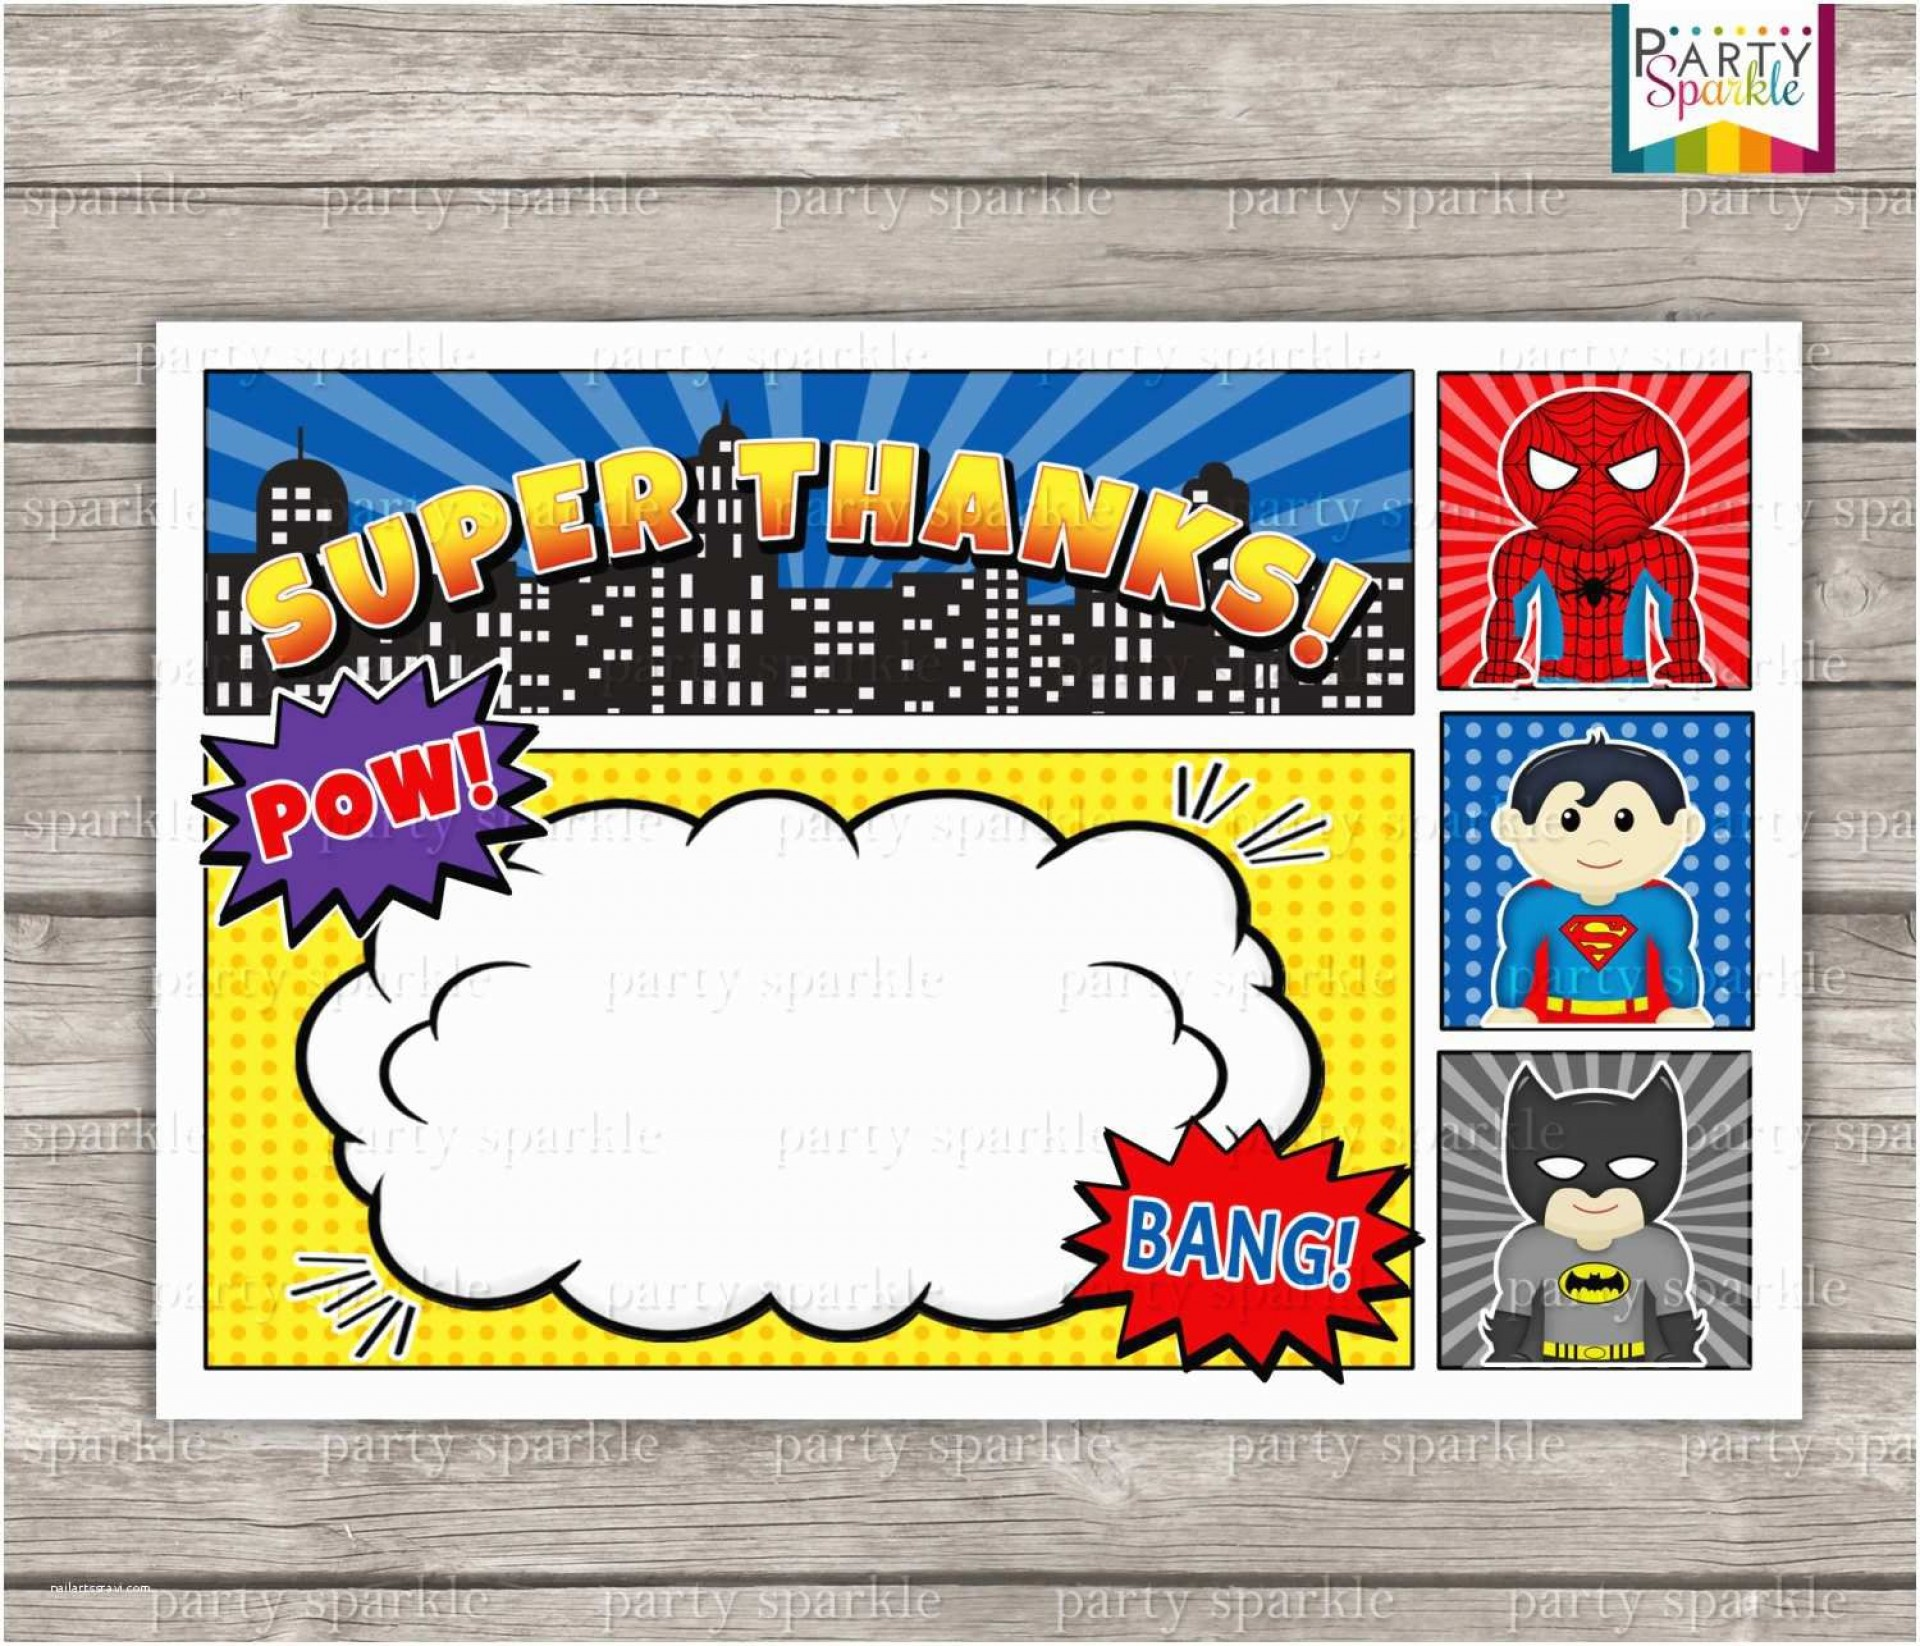 006 Remarkable Superhero Invitation Template Free Picture  Baby Shower Newspaper Birthday Party1920